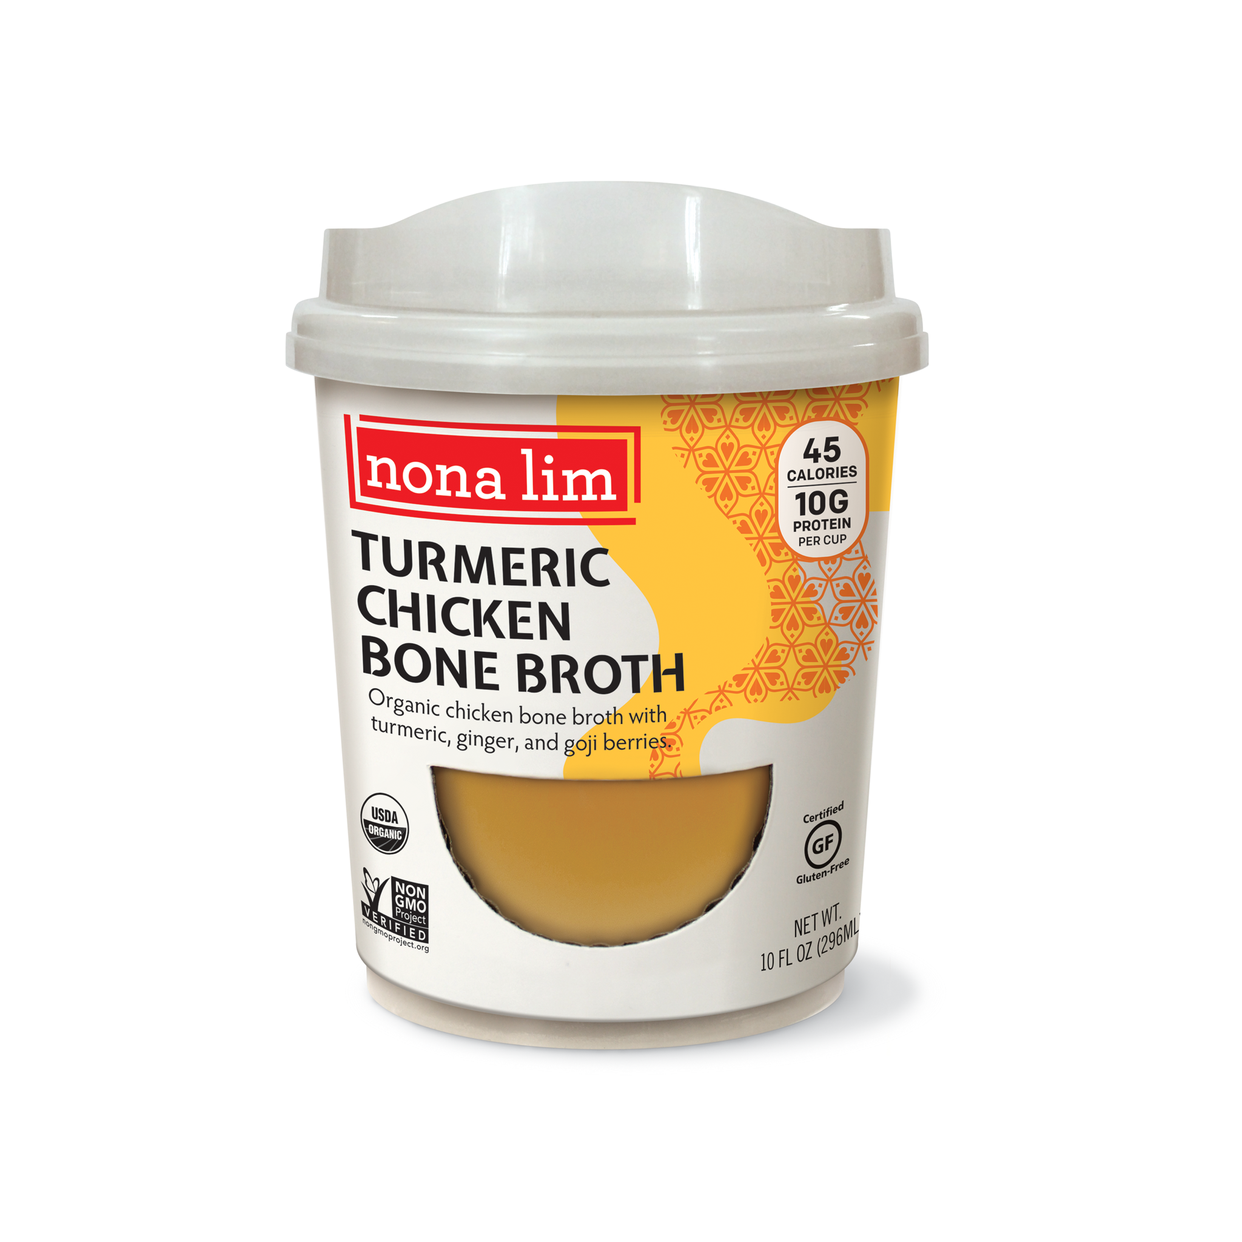 nona lim turmeric chicken bone broth